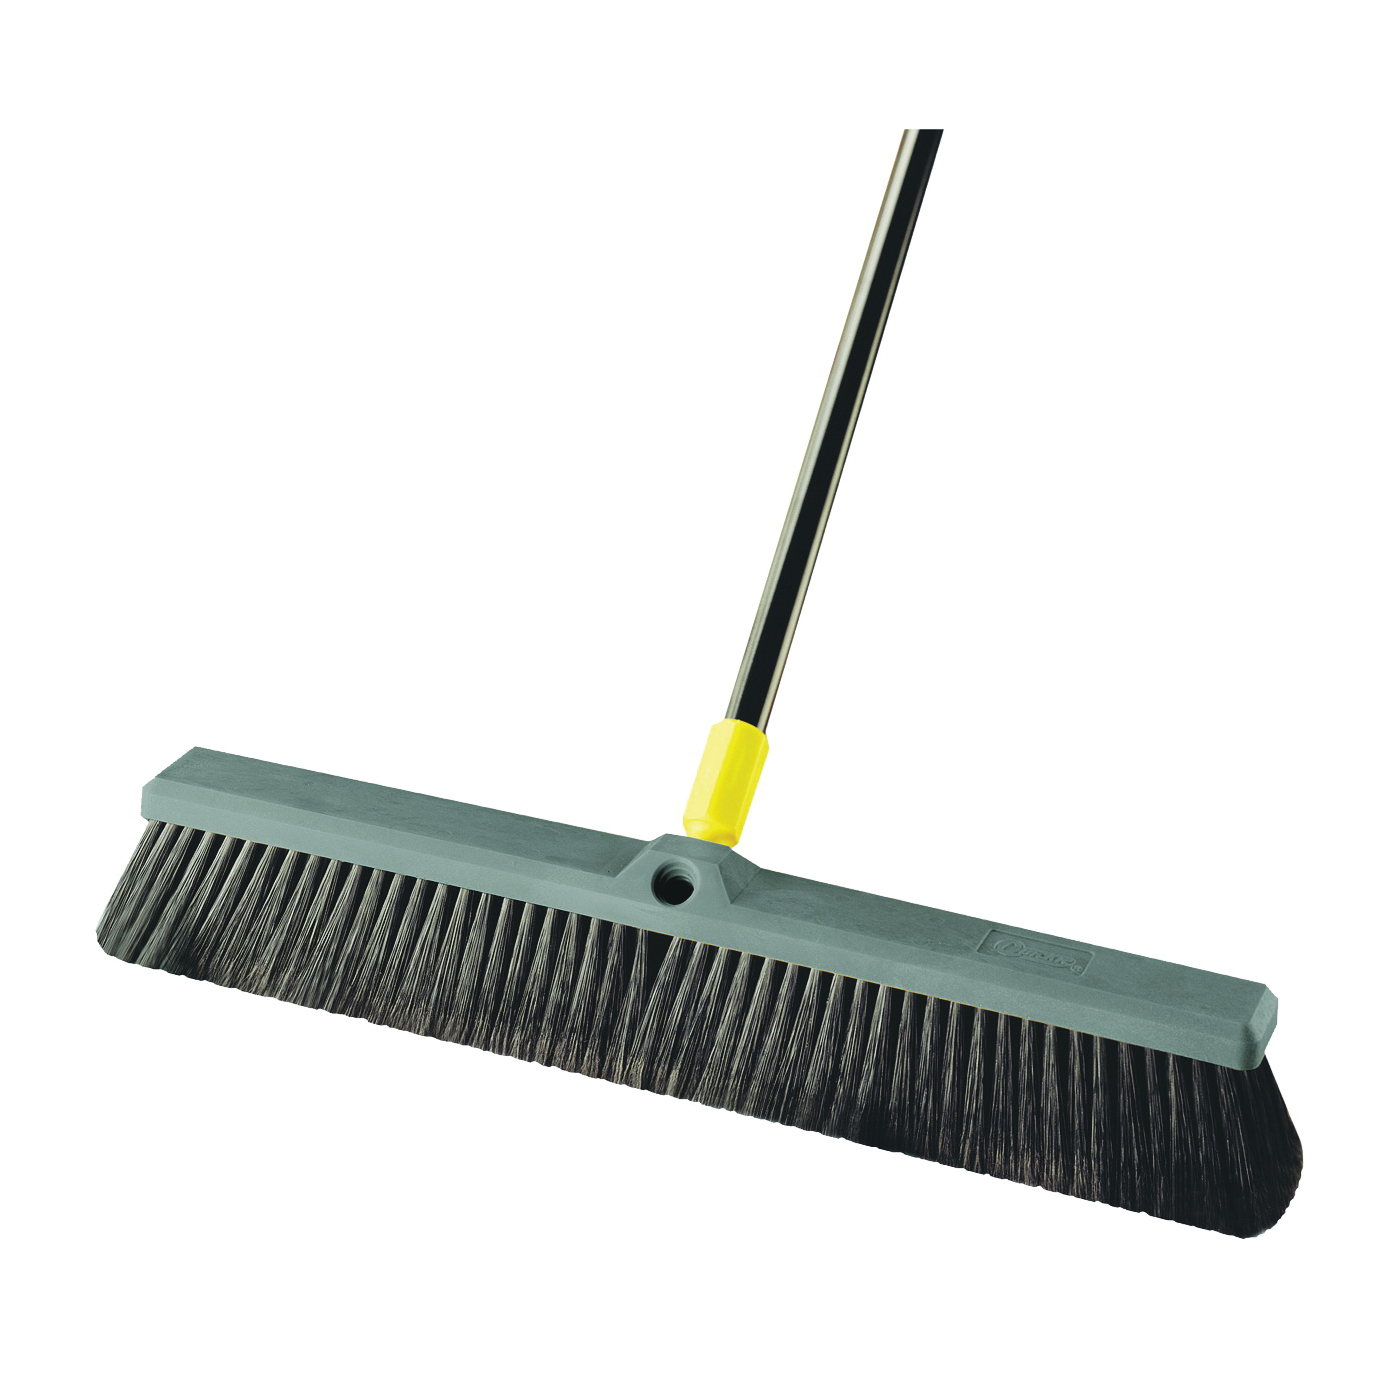 Picture of Quickie 00533 Push Broom, 24 in Sweep Face, Polypropylene Bristle, Steel Handle